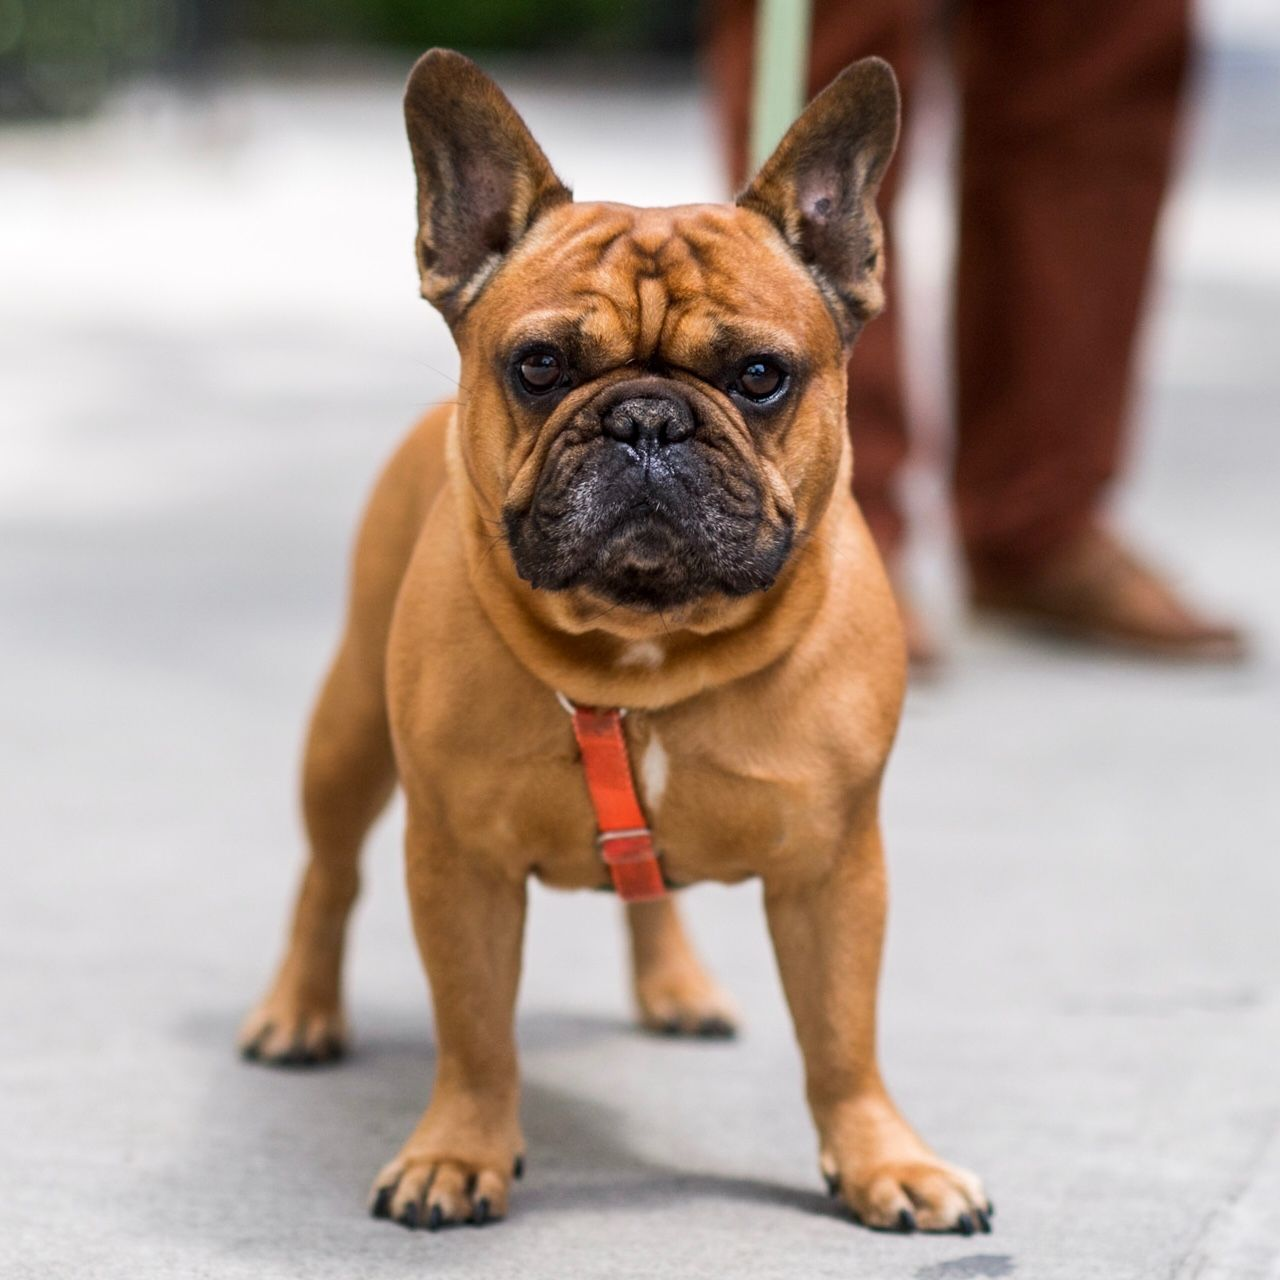 Rusty, French Bulldog (6 y/o), 8th & 5th Ave., New York